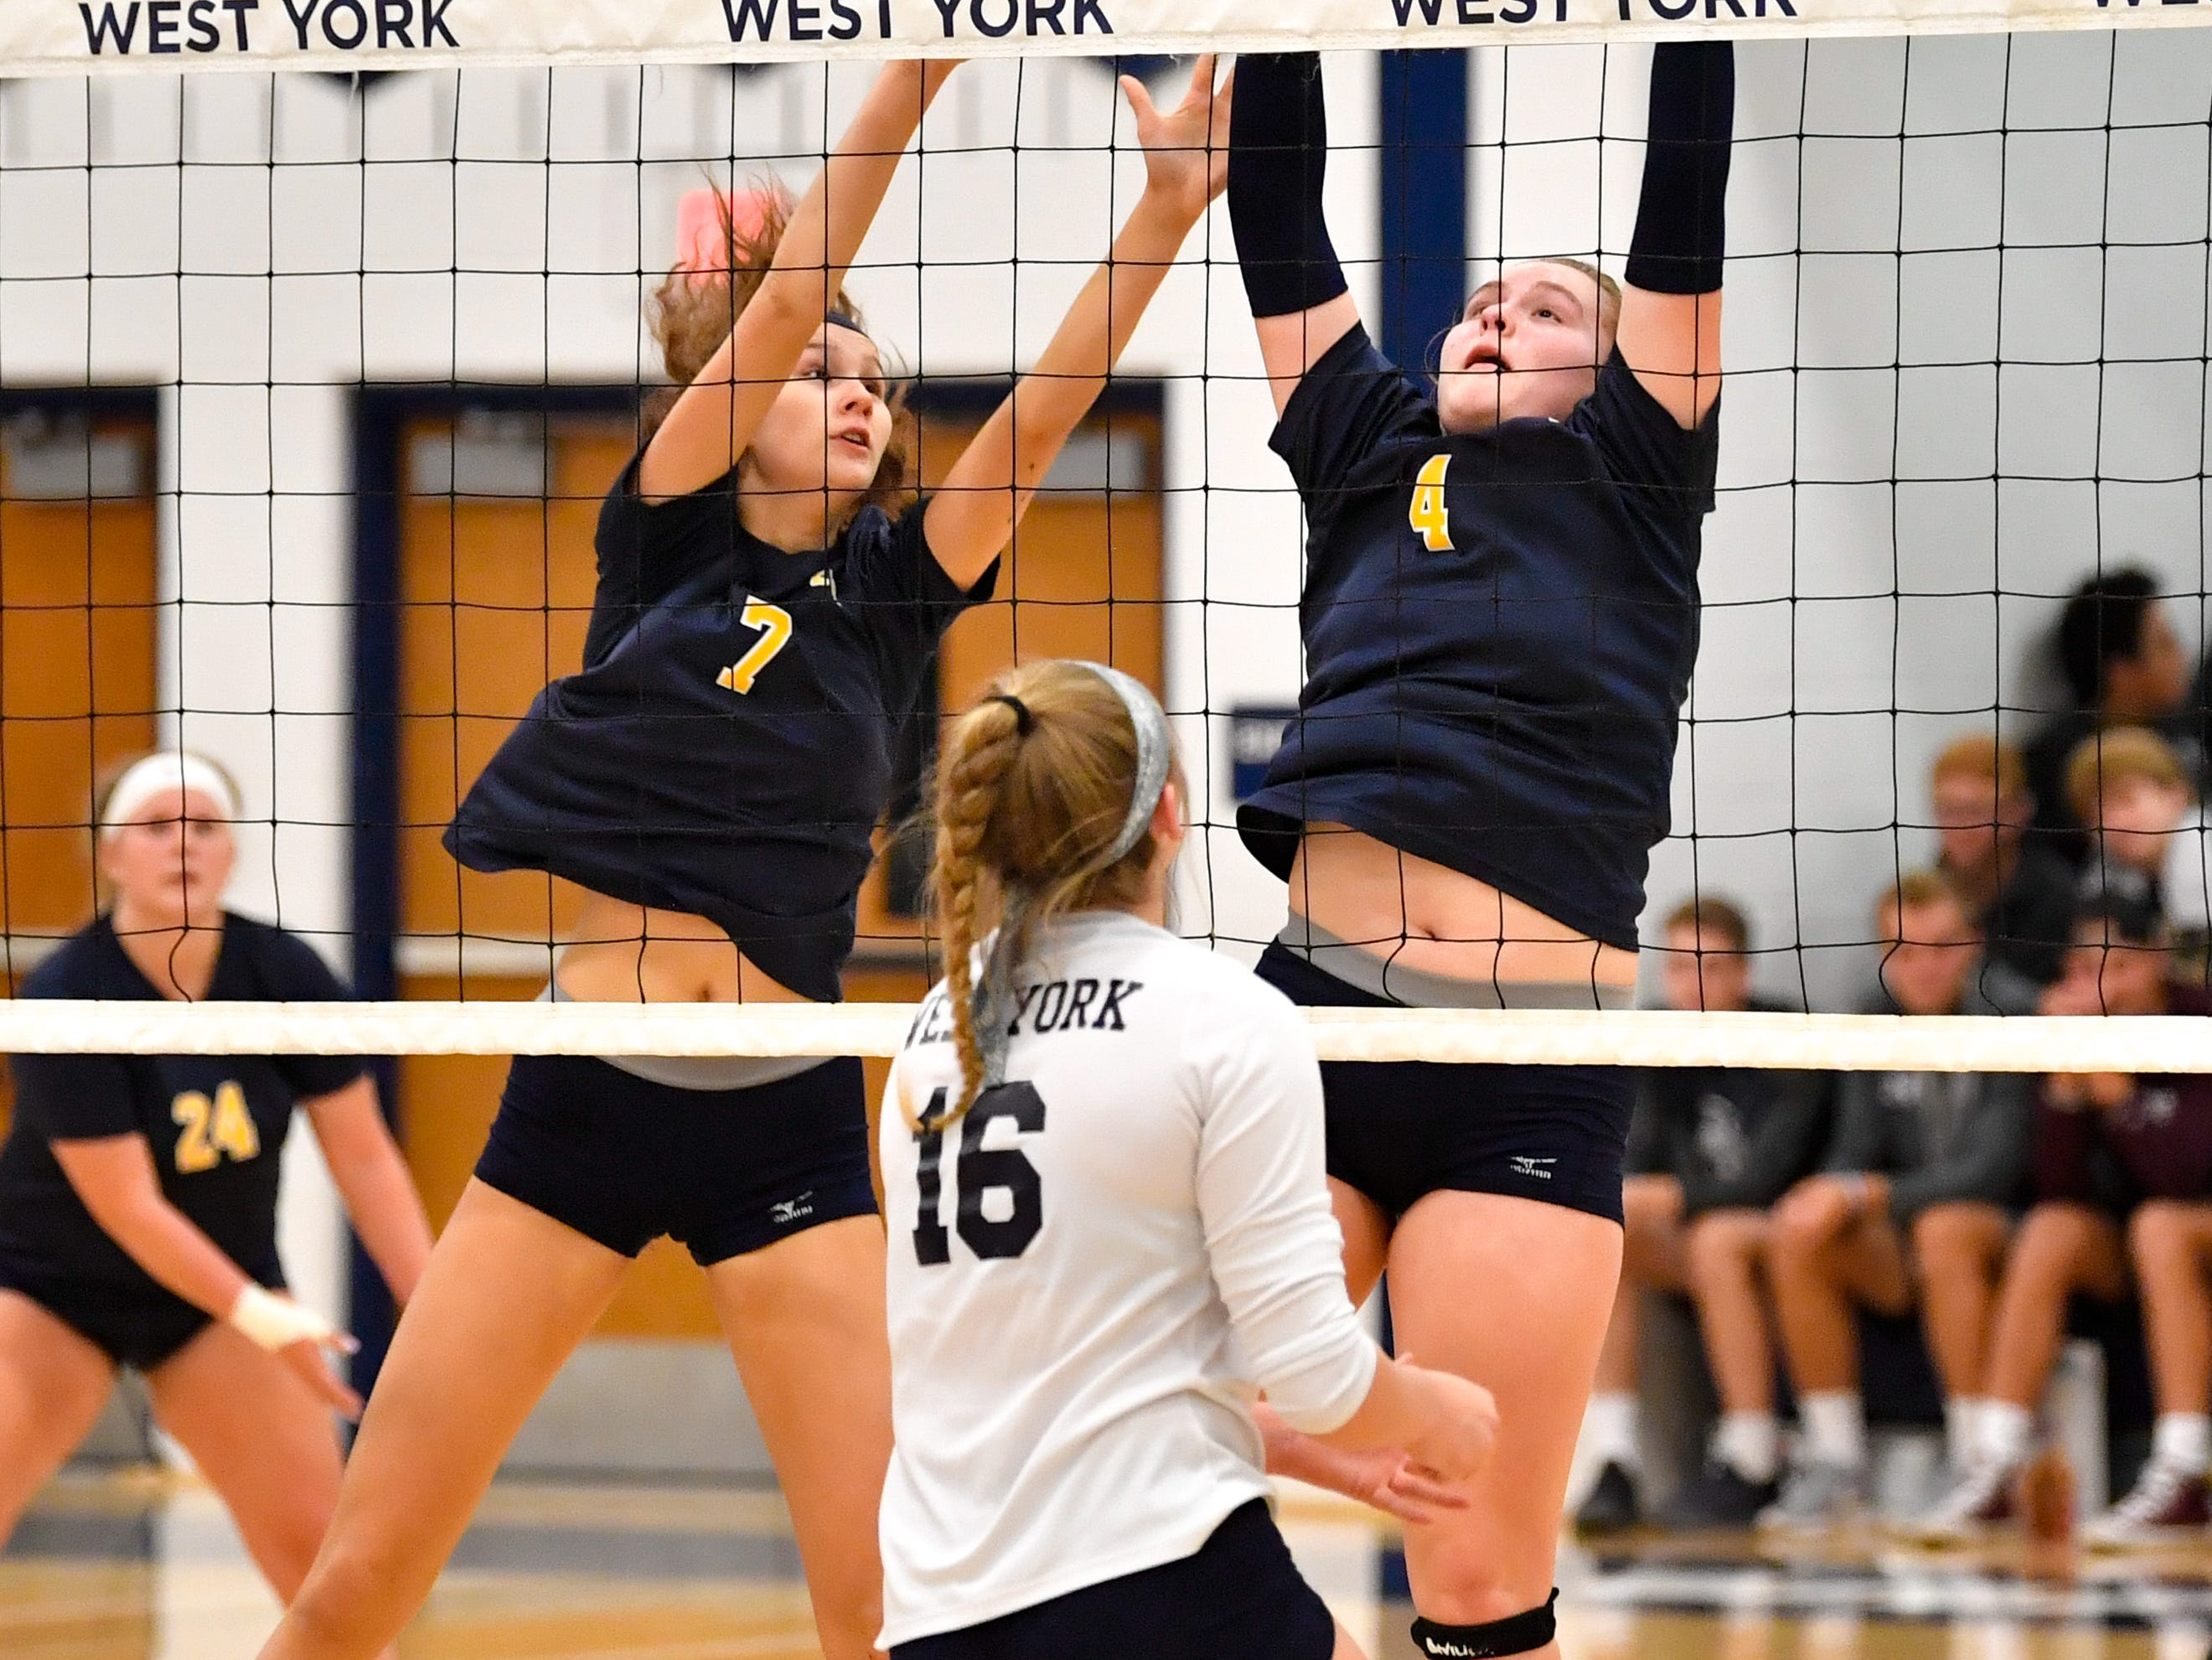 Abby Smith (7) and Sarah Moore (4) try to block the ball during the District 3 Class 3A girls' volleyball quarterfinals between West York and Eastern York at West York High School, October 30, 2018. The Bulldogs defeated the Golden Knights 3-0.